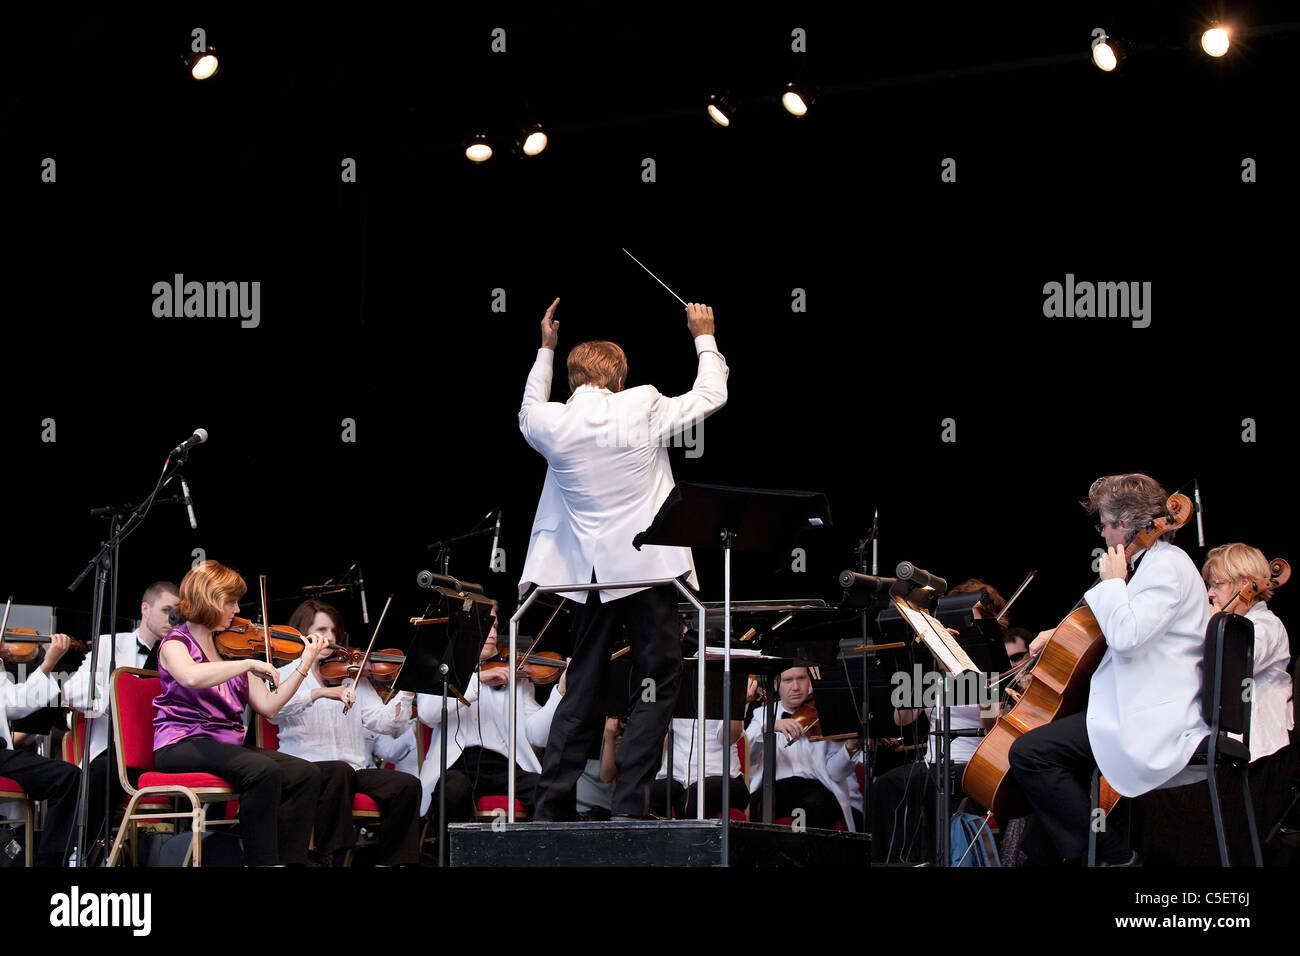 Winnipeg Symphony Orchestra, conducted by Alexander Mickelthwate. - Stock Image